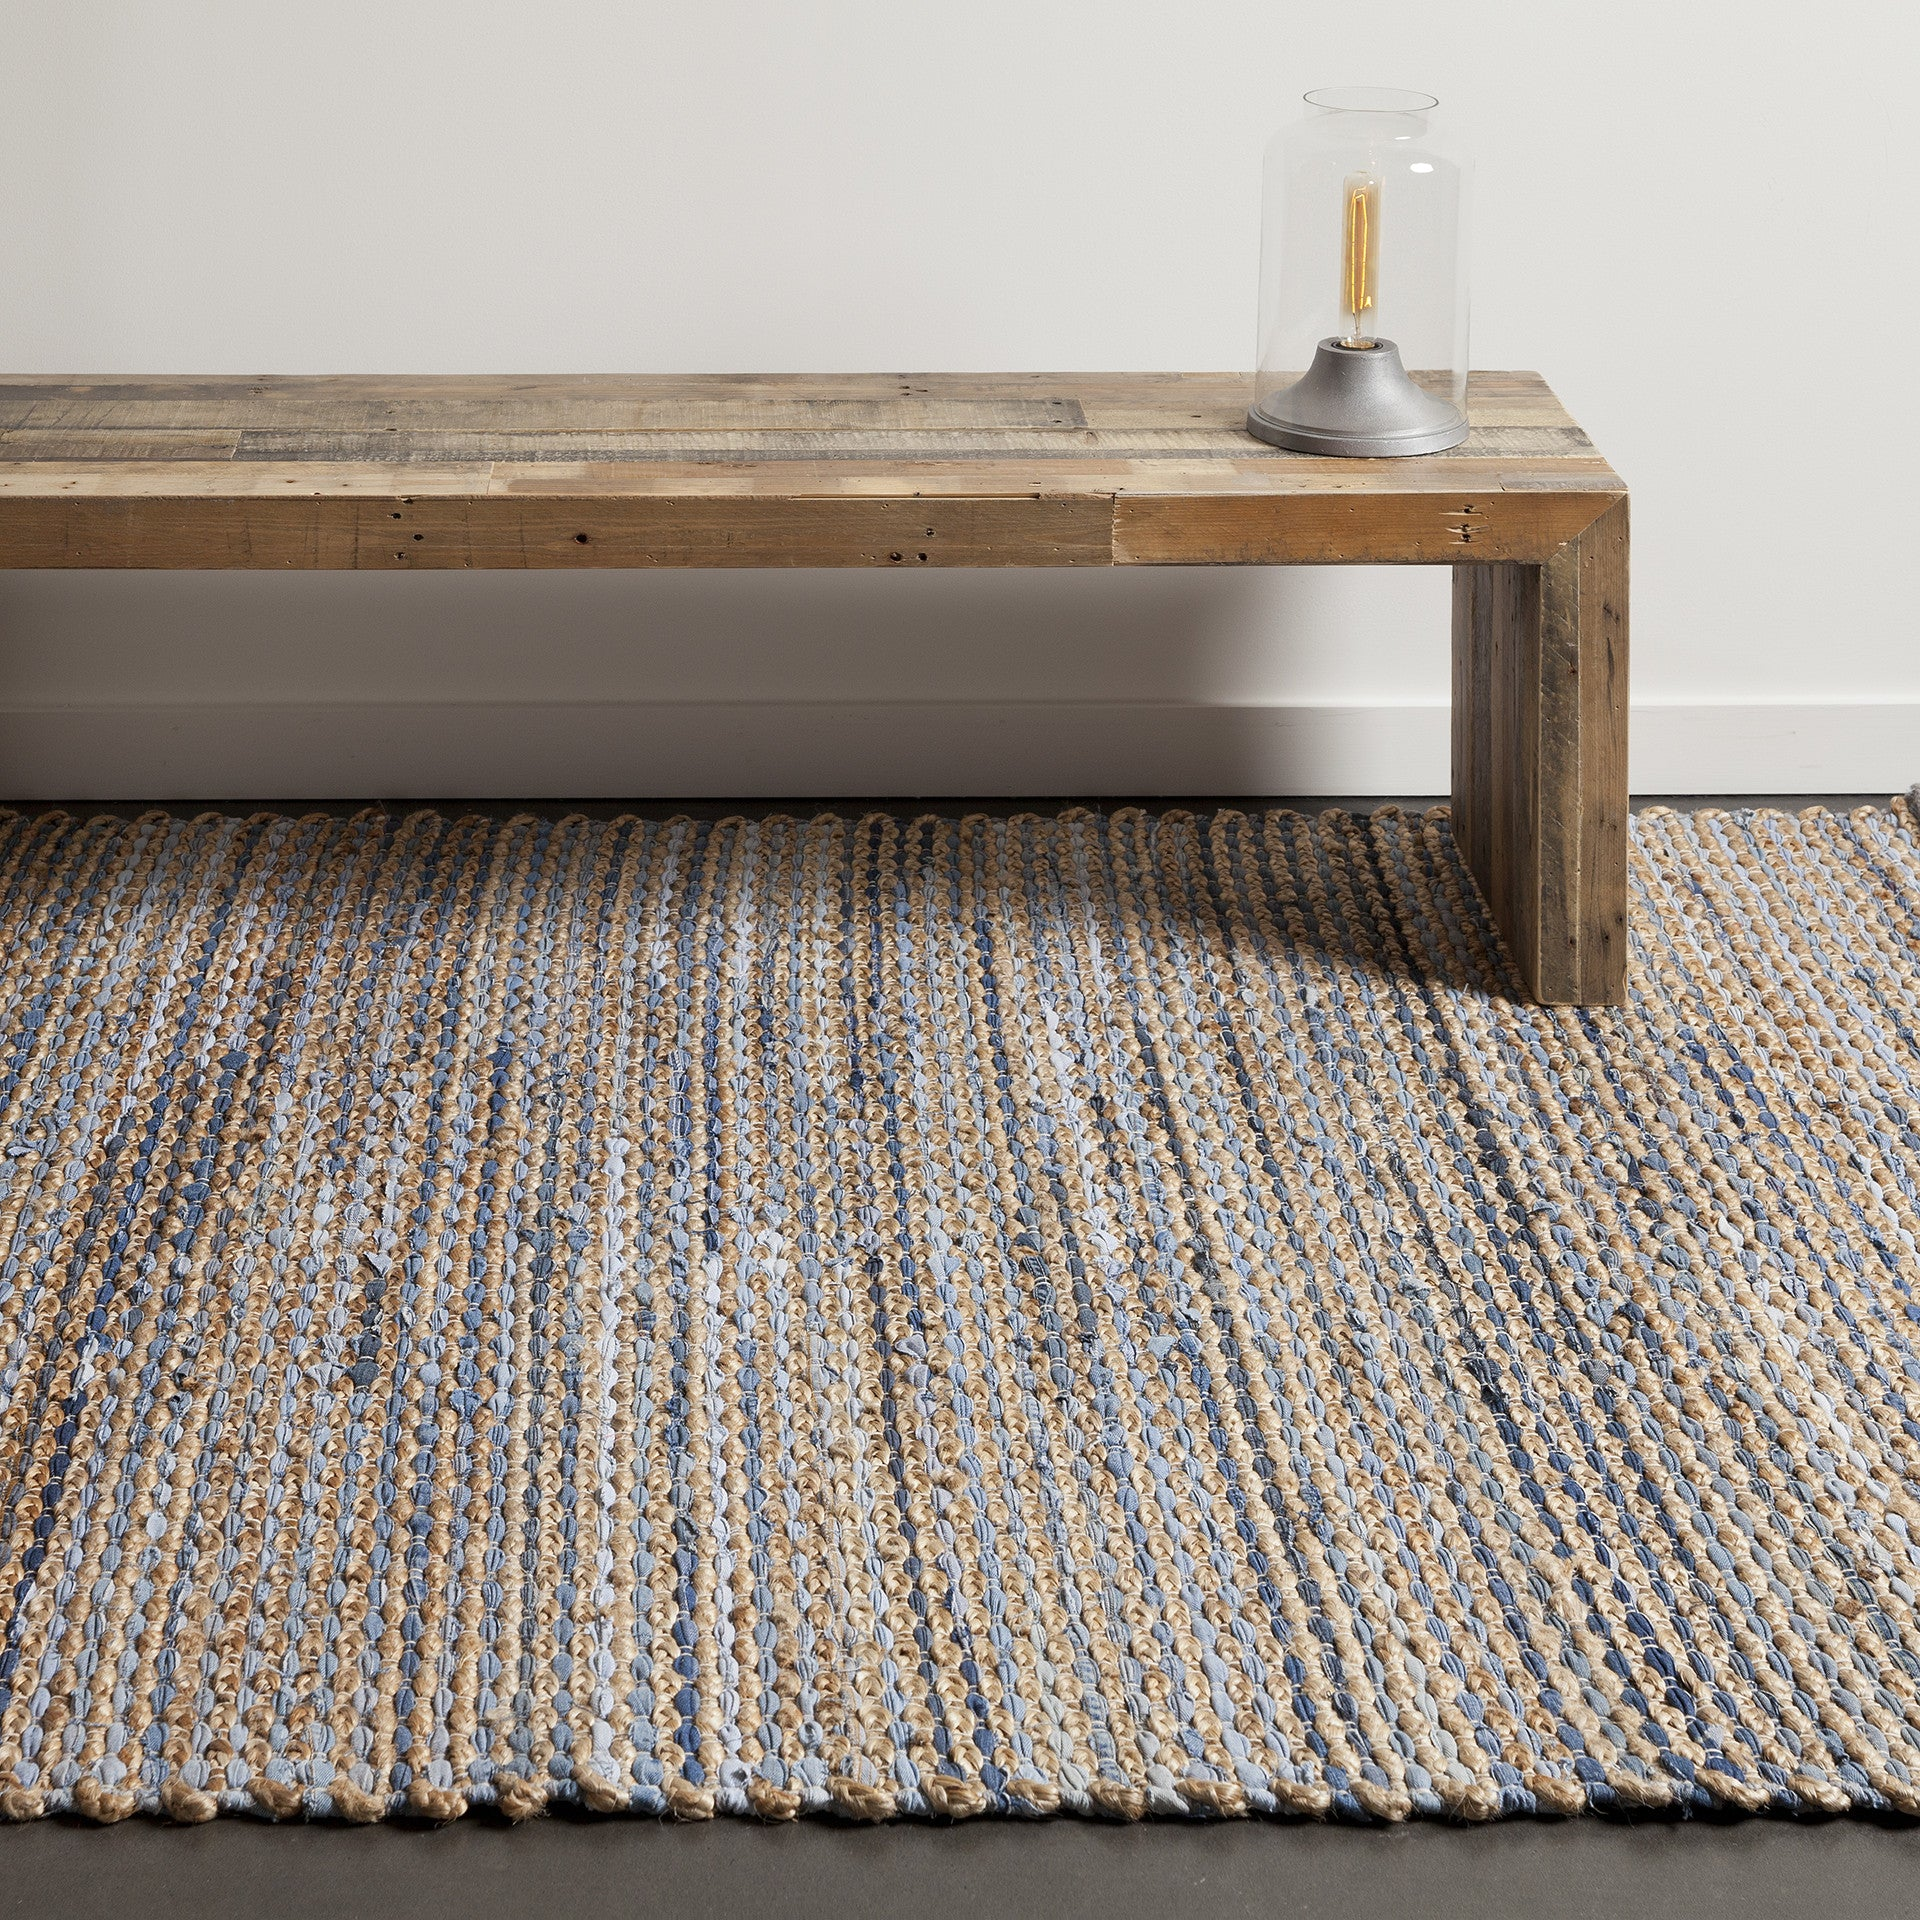 Beautiful Easton Collection Hand Woven Area Rug In Blue, Tan, U0026 Grey Design By  Chandra Rugs